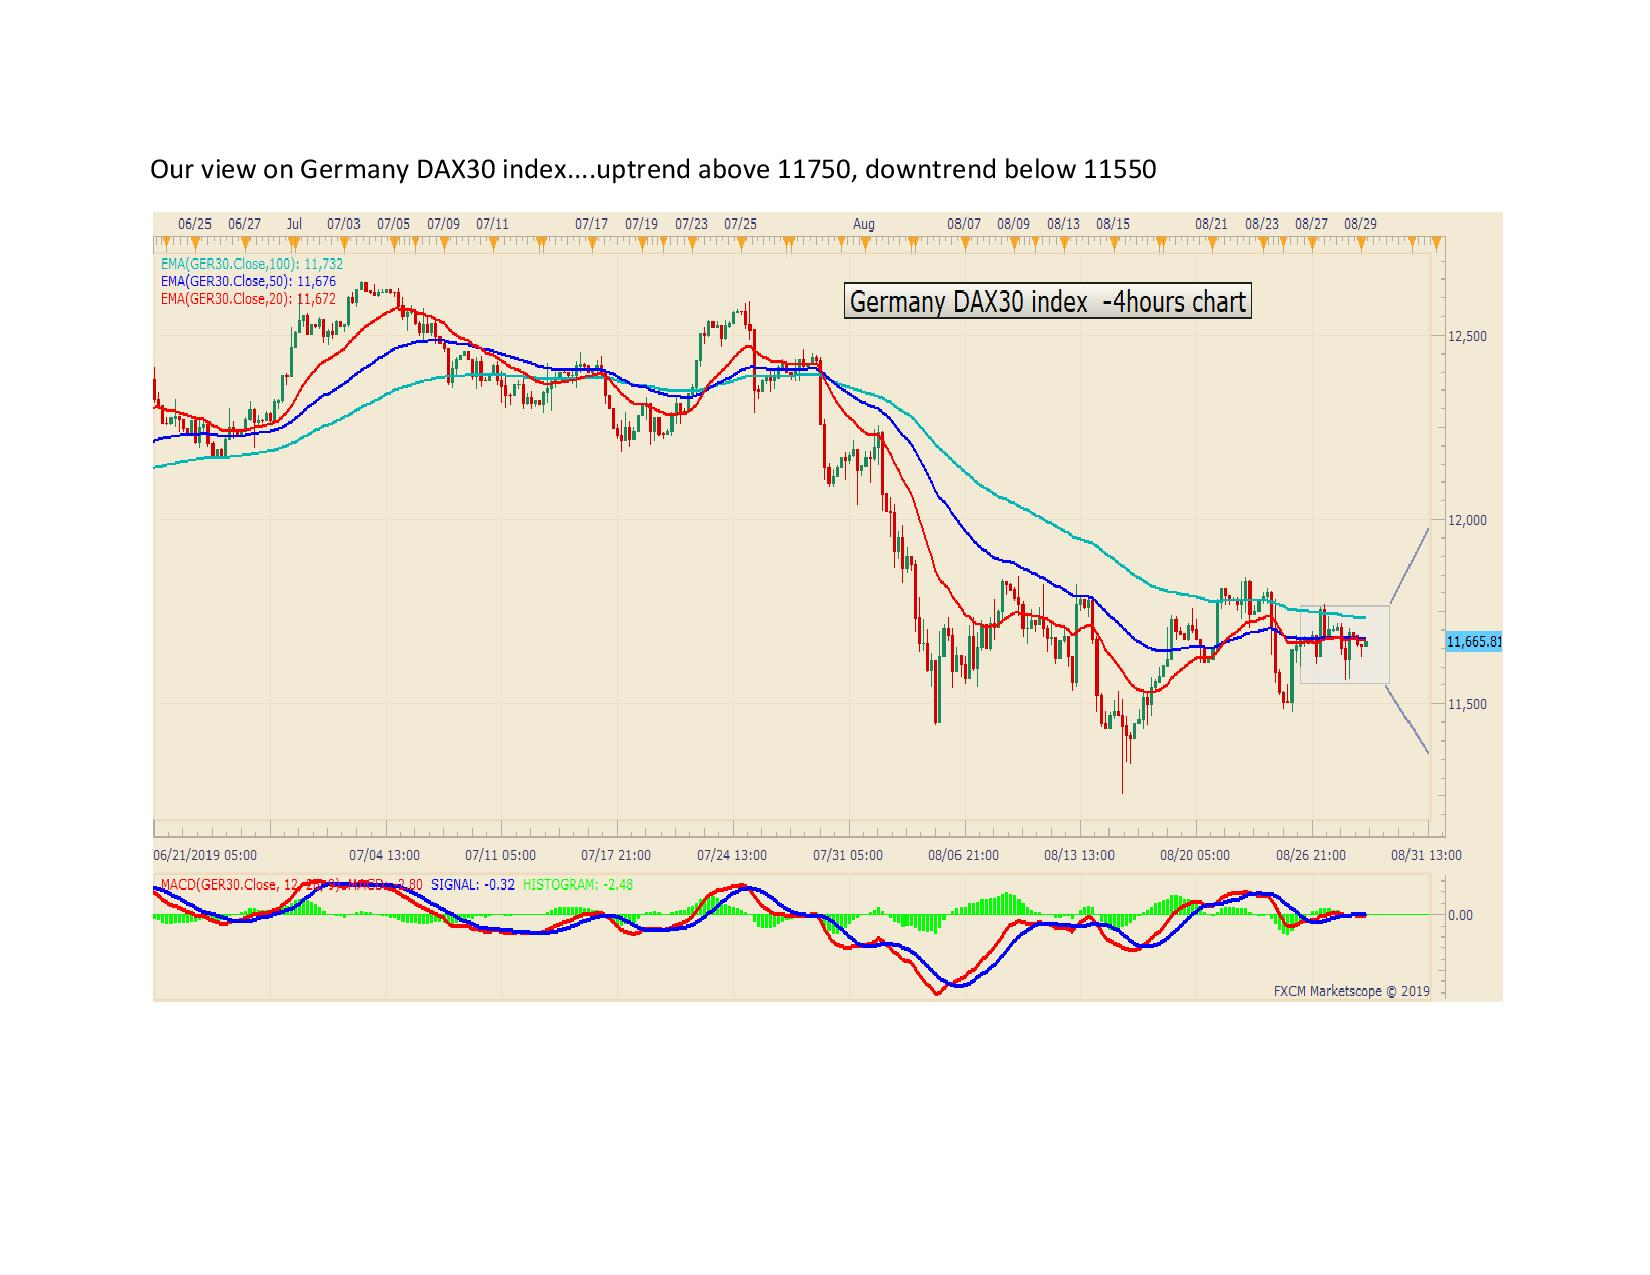 Our view on Germany DAX30 index page 0011